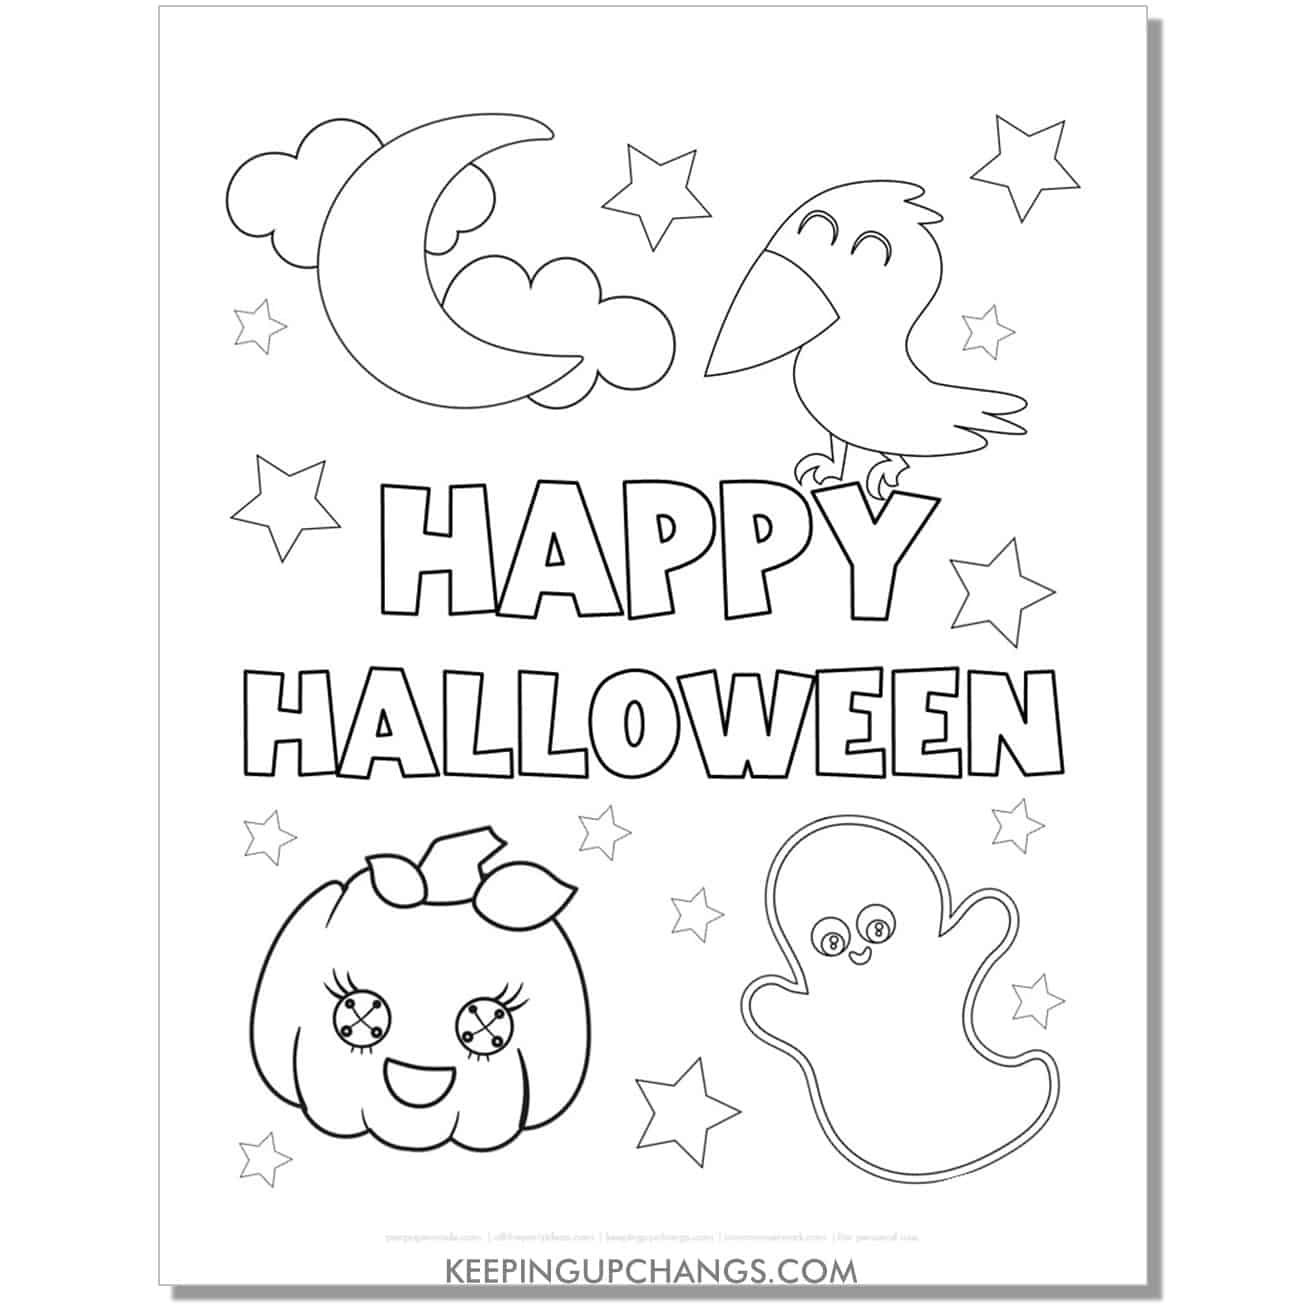 free happy halloween ghost, crow, moon, jack o lantern coloring page.